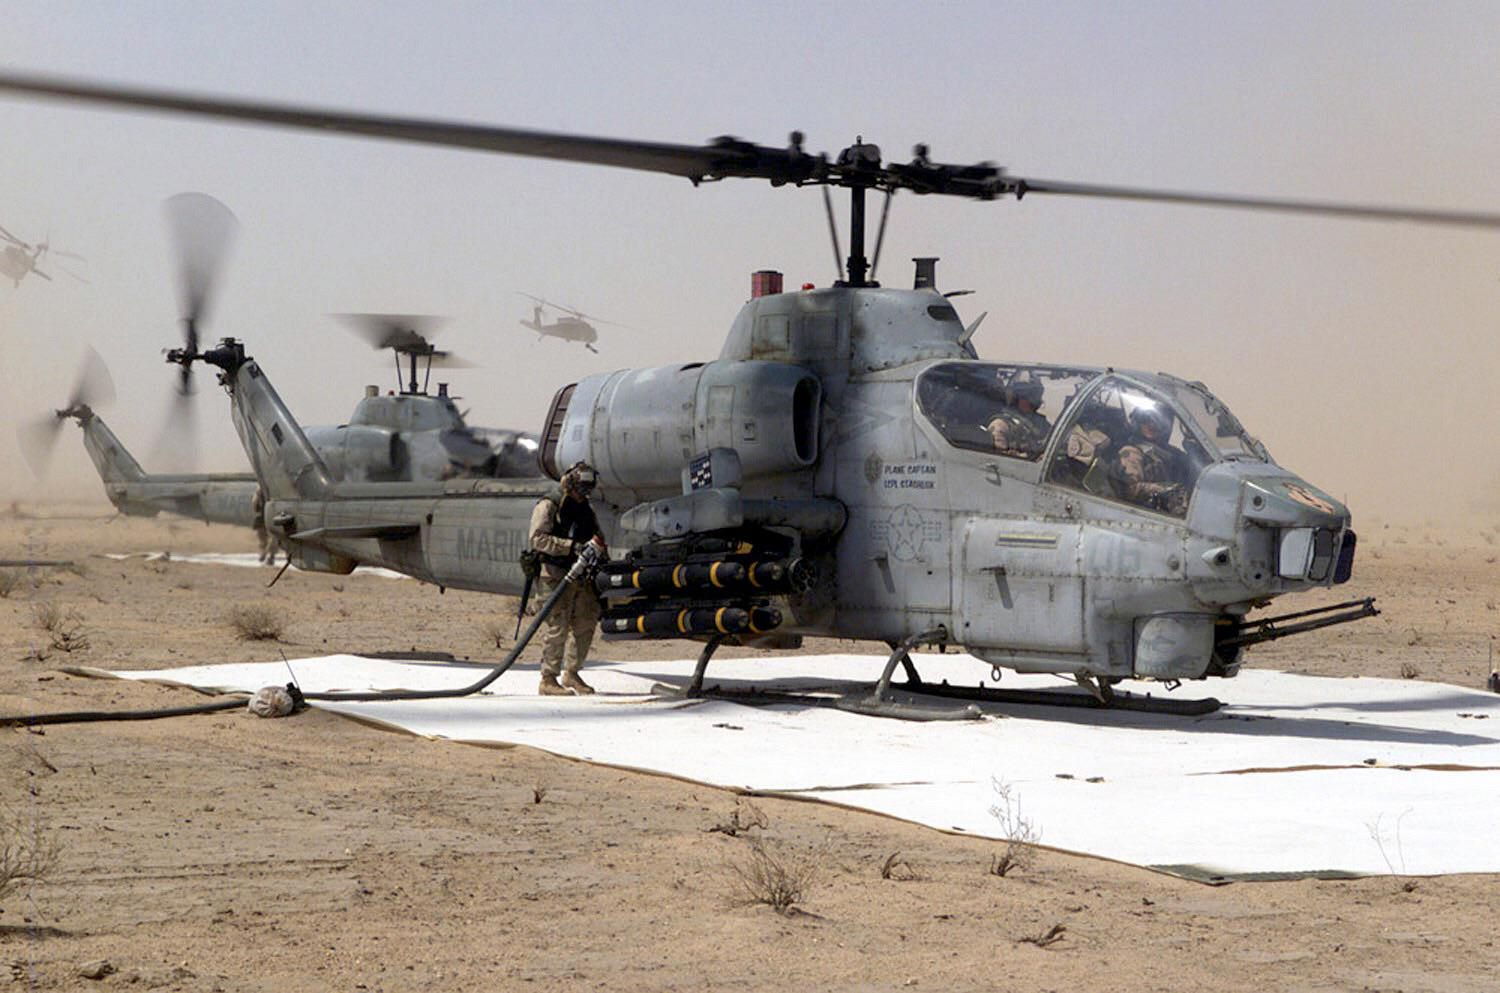 AH-1W Cobra helicopter gunship, from the 3rd Marine Aircraft Wing (MAW) at a forward aircraft refueling point on Jalibah Air Bas